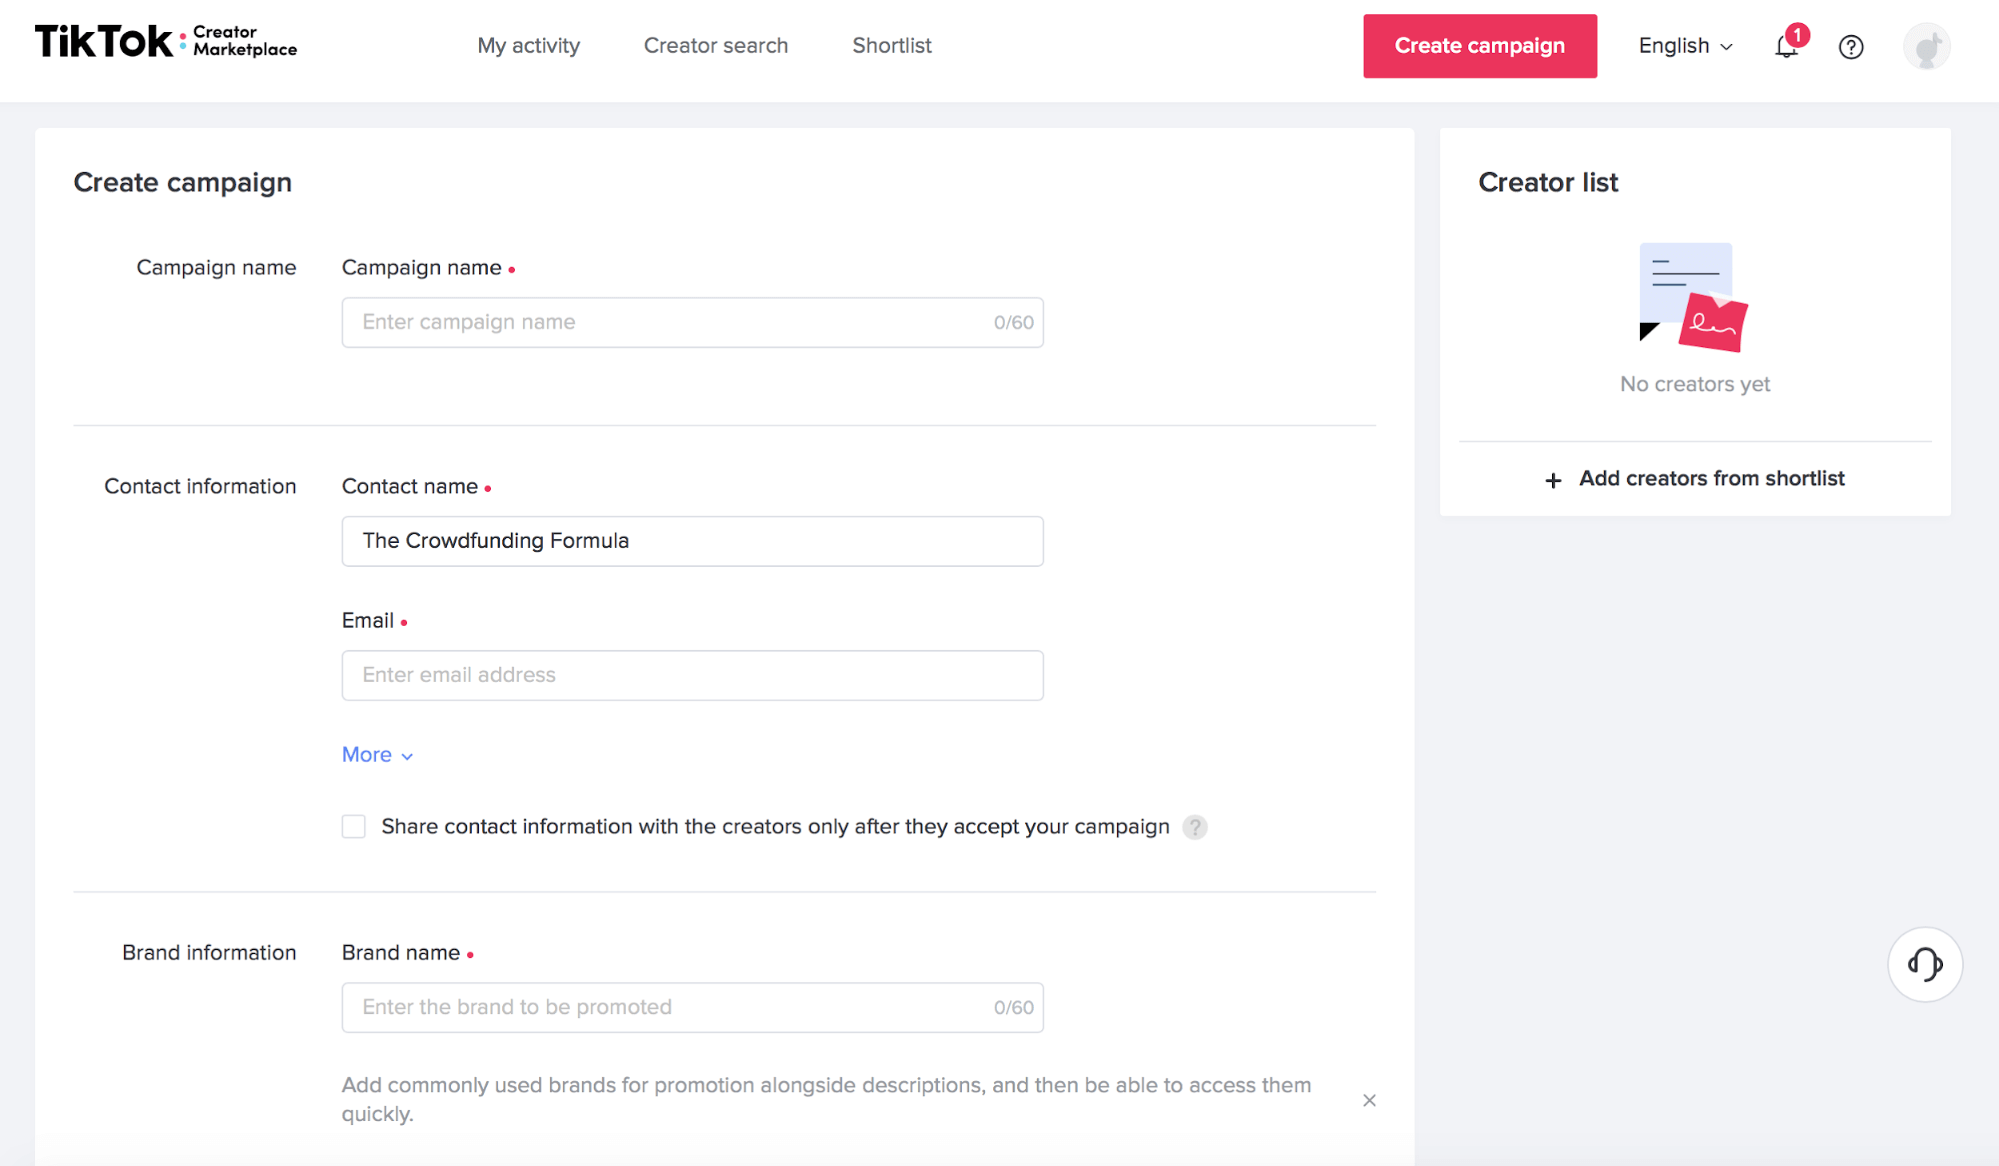 TikTok Marketplace Research and Outreach, Campaign Creation